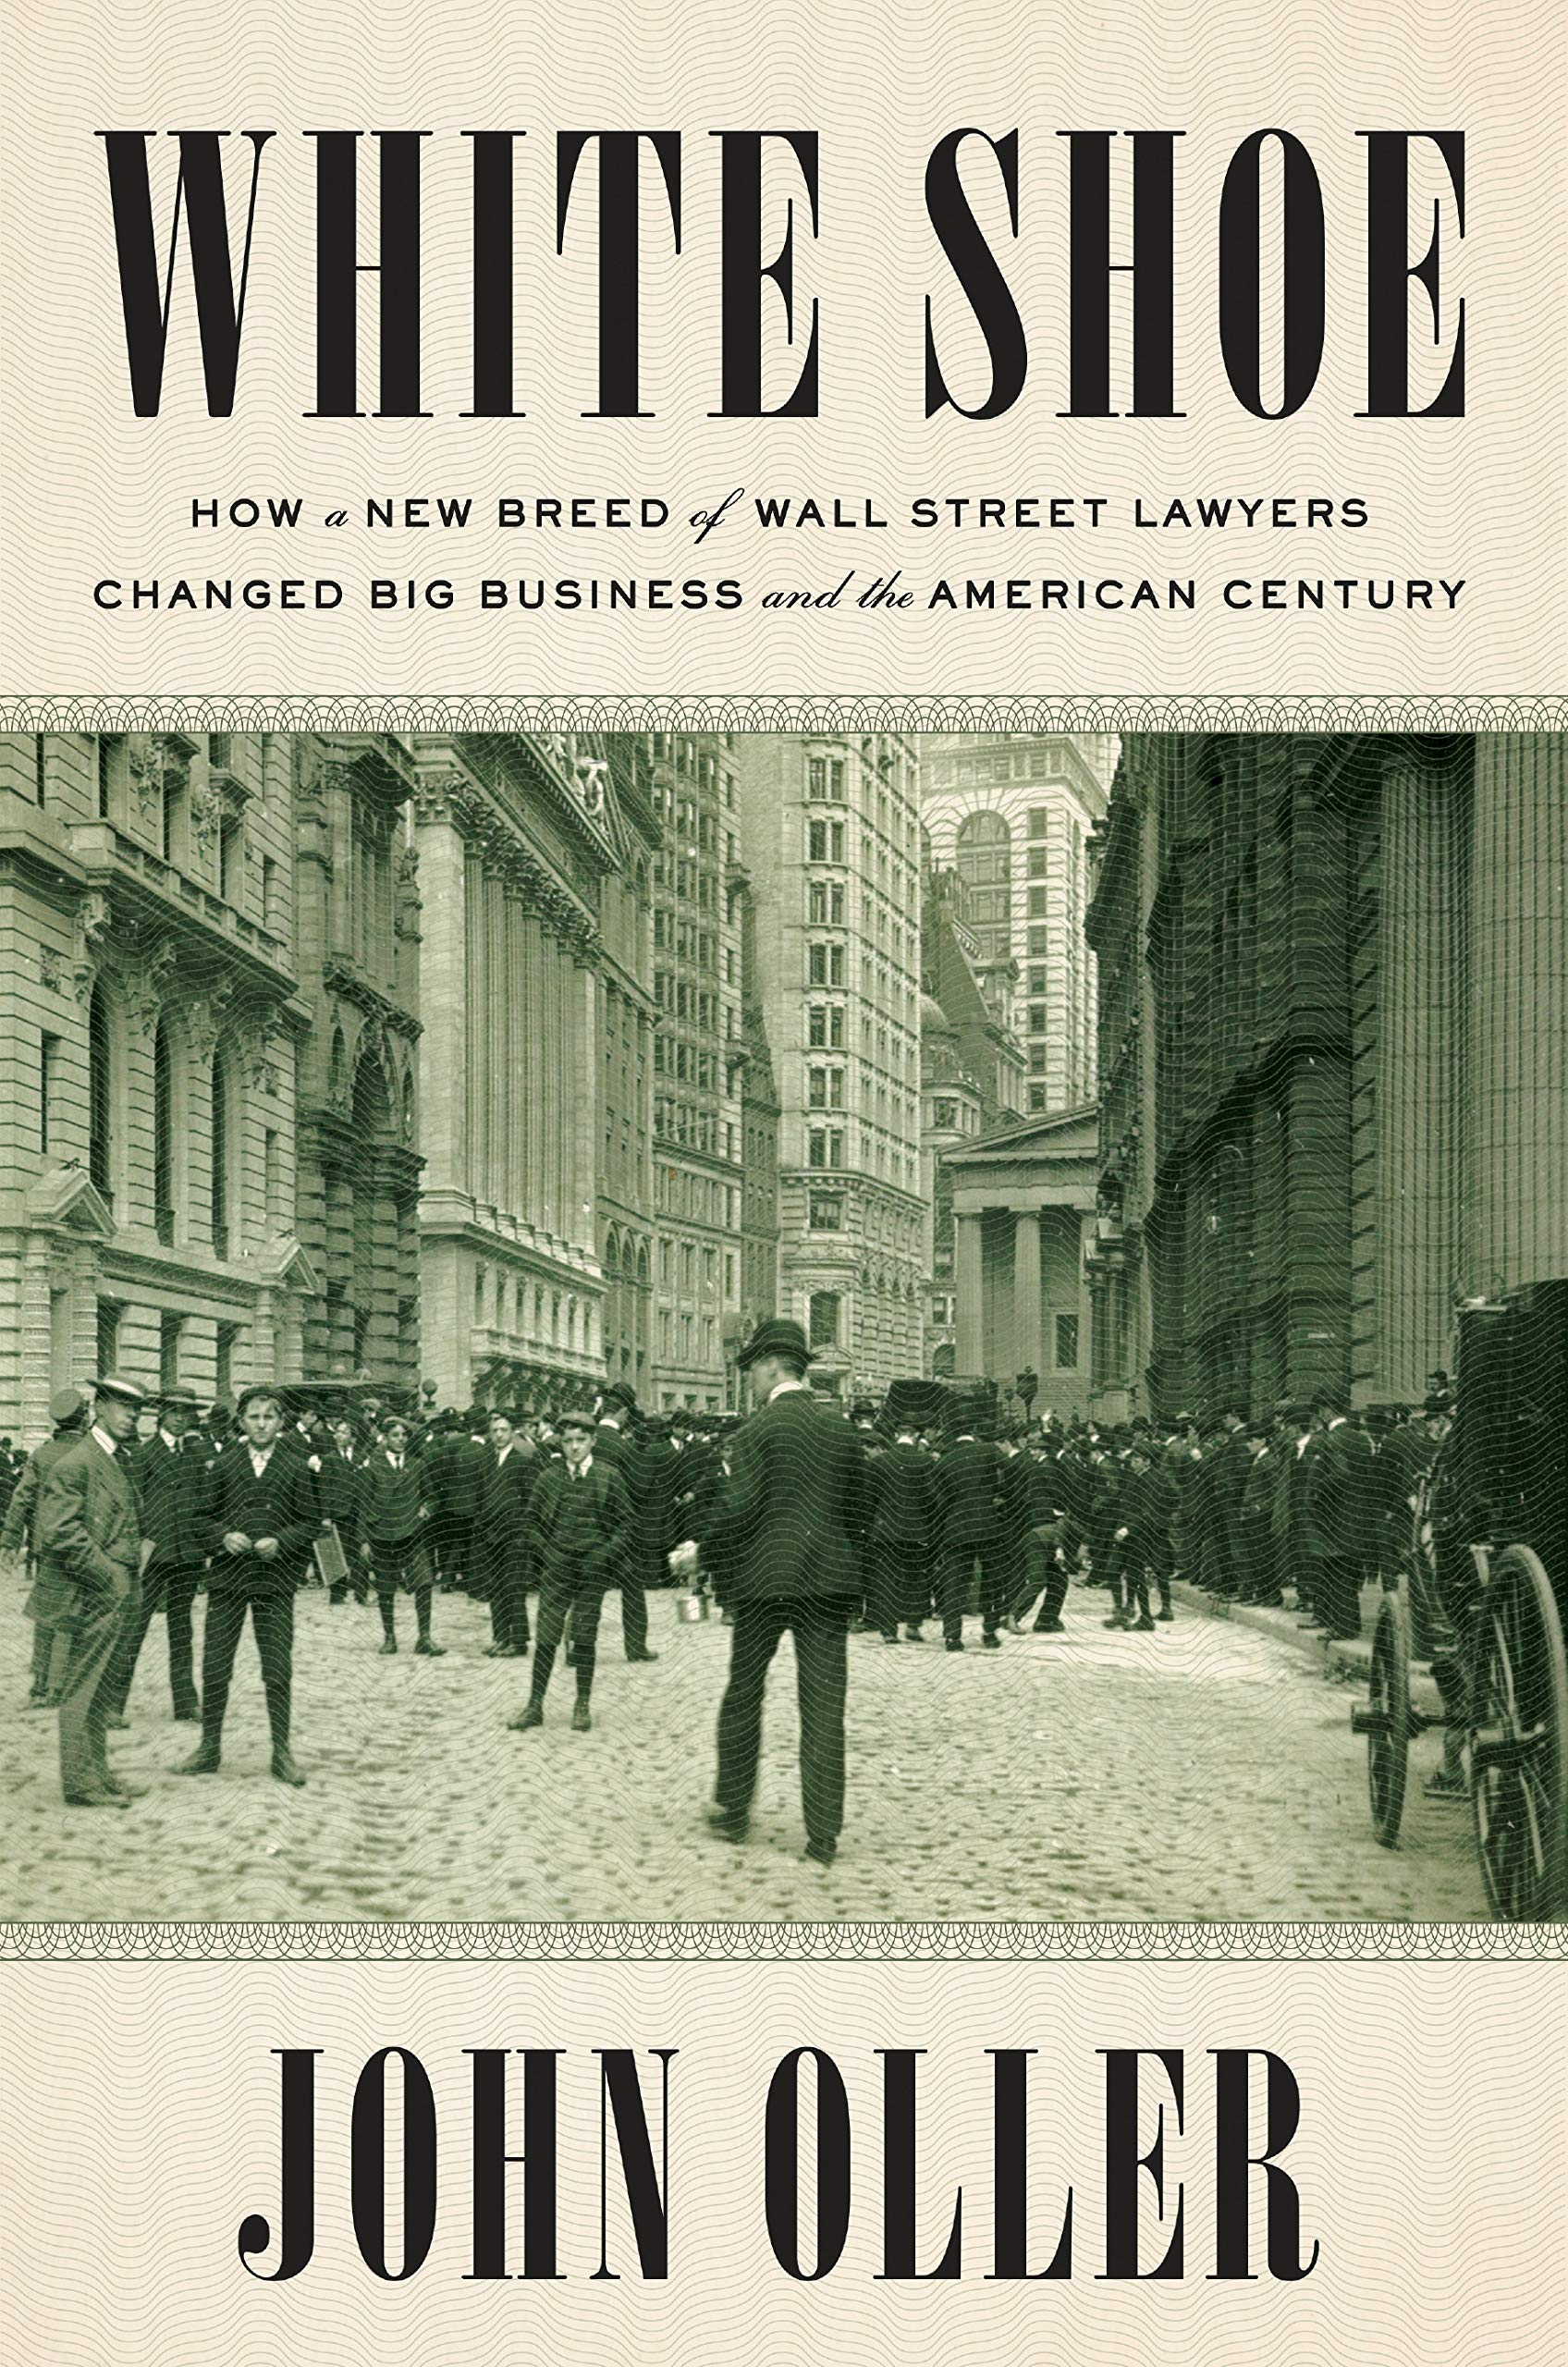 White Shoe: How a New Breed of Wall Street Lawyers Changed Big Business and the American Century by Dutton